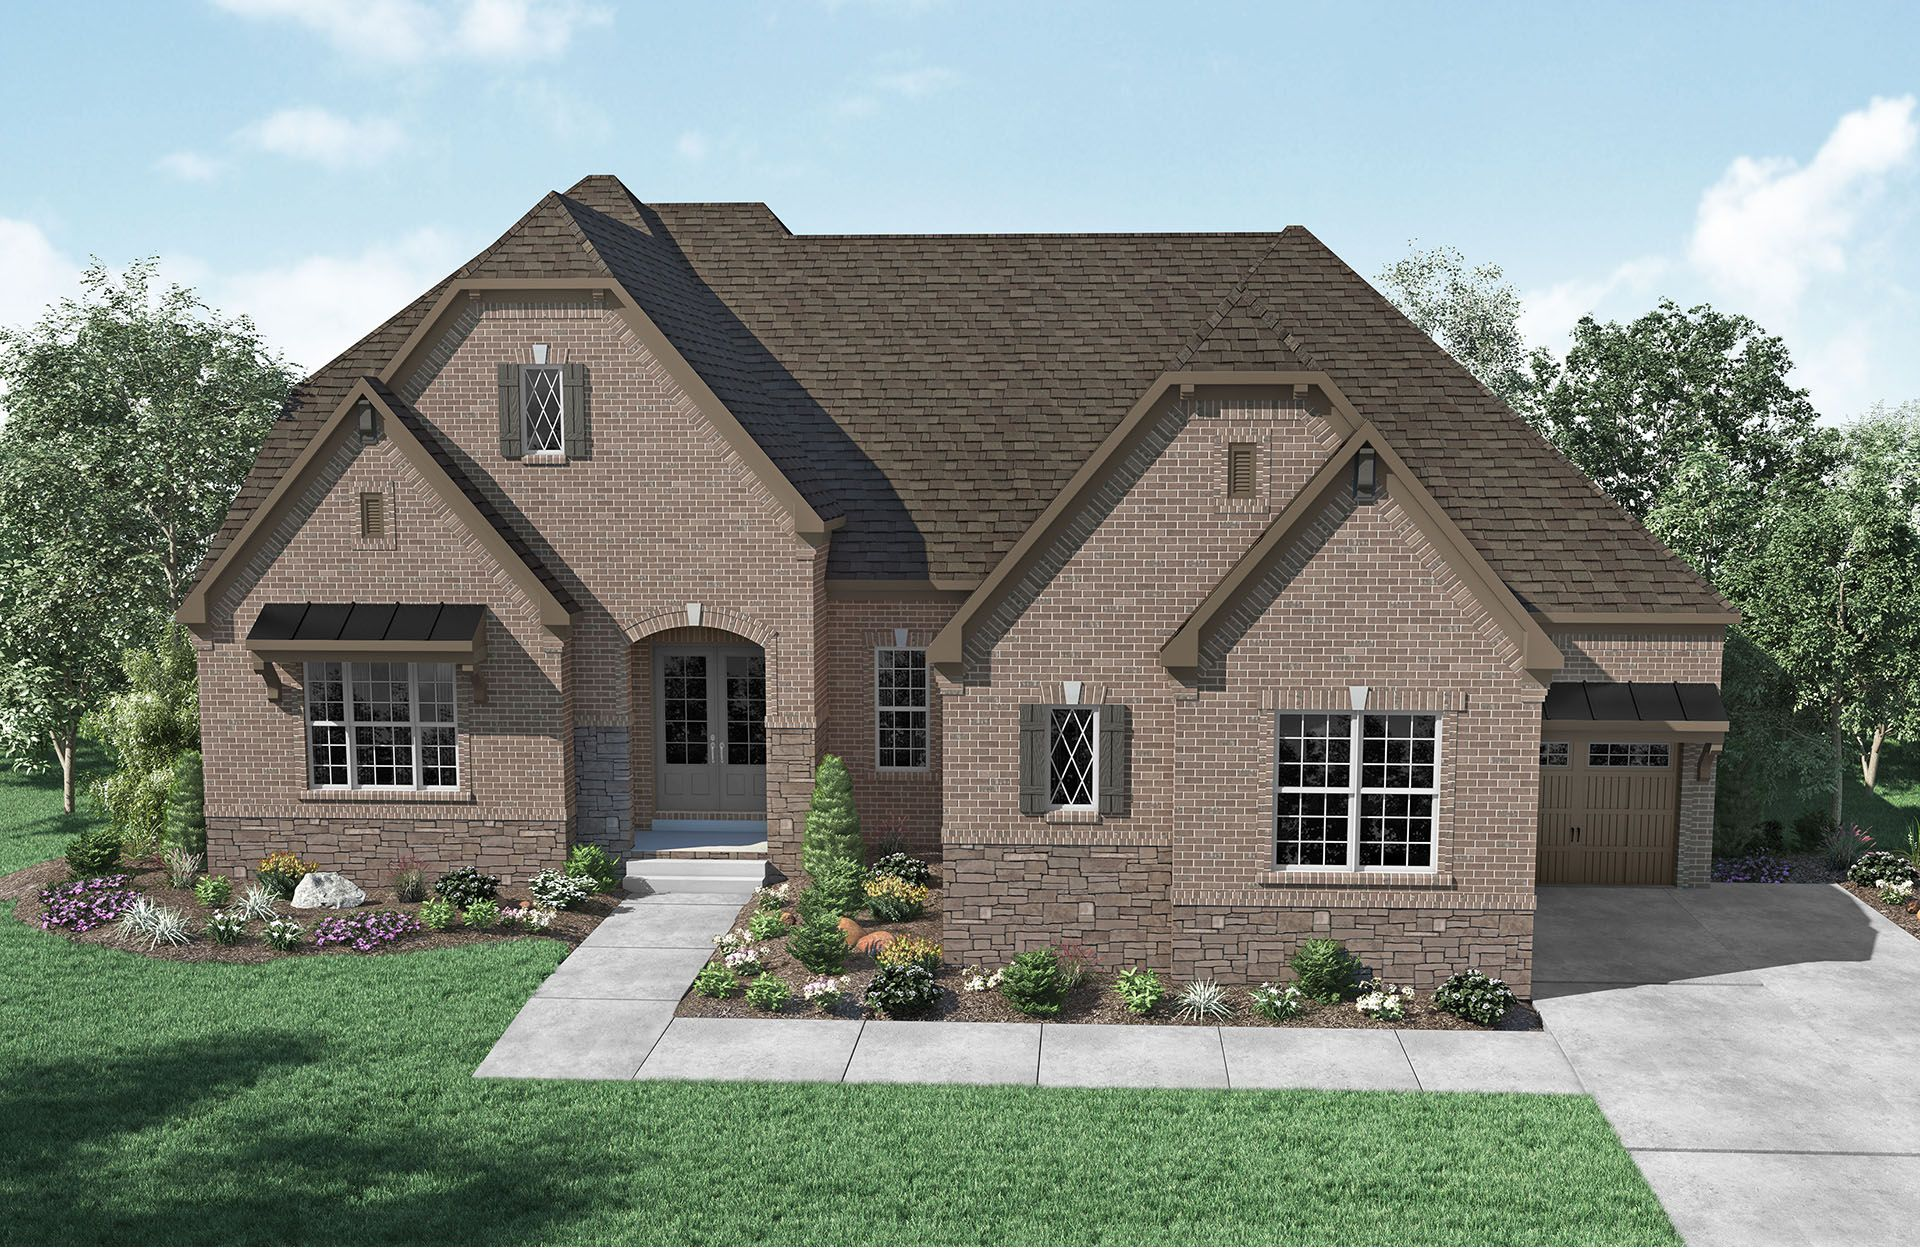 Single Family for Active at Asher - Camden 108 Telfair Lane Nolensville, Tennessee 37135 United States